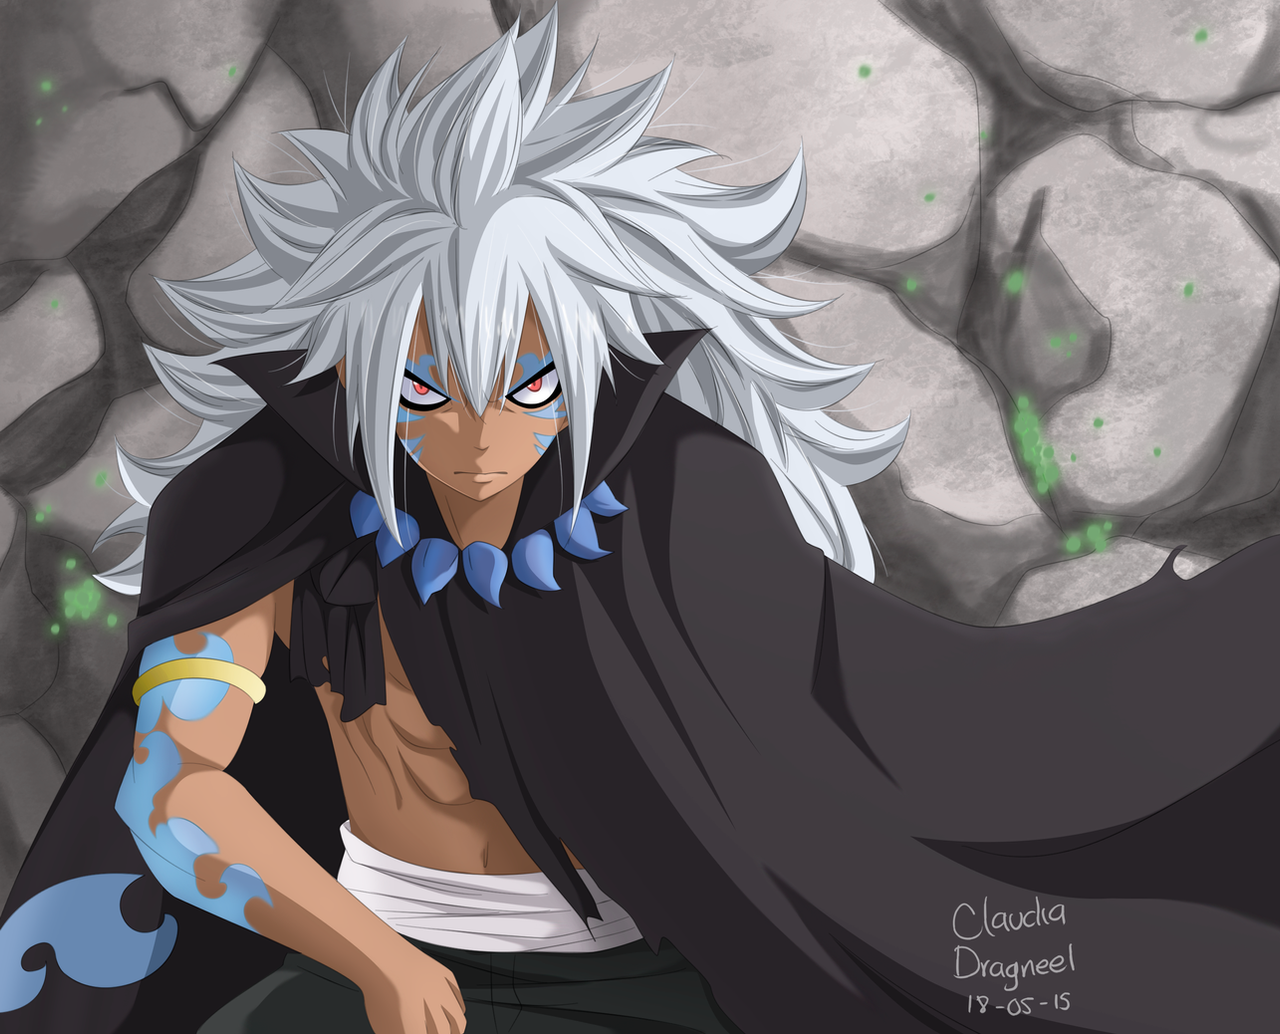 fairy tail 7 dragon slayers vs acnologia human